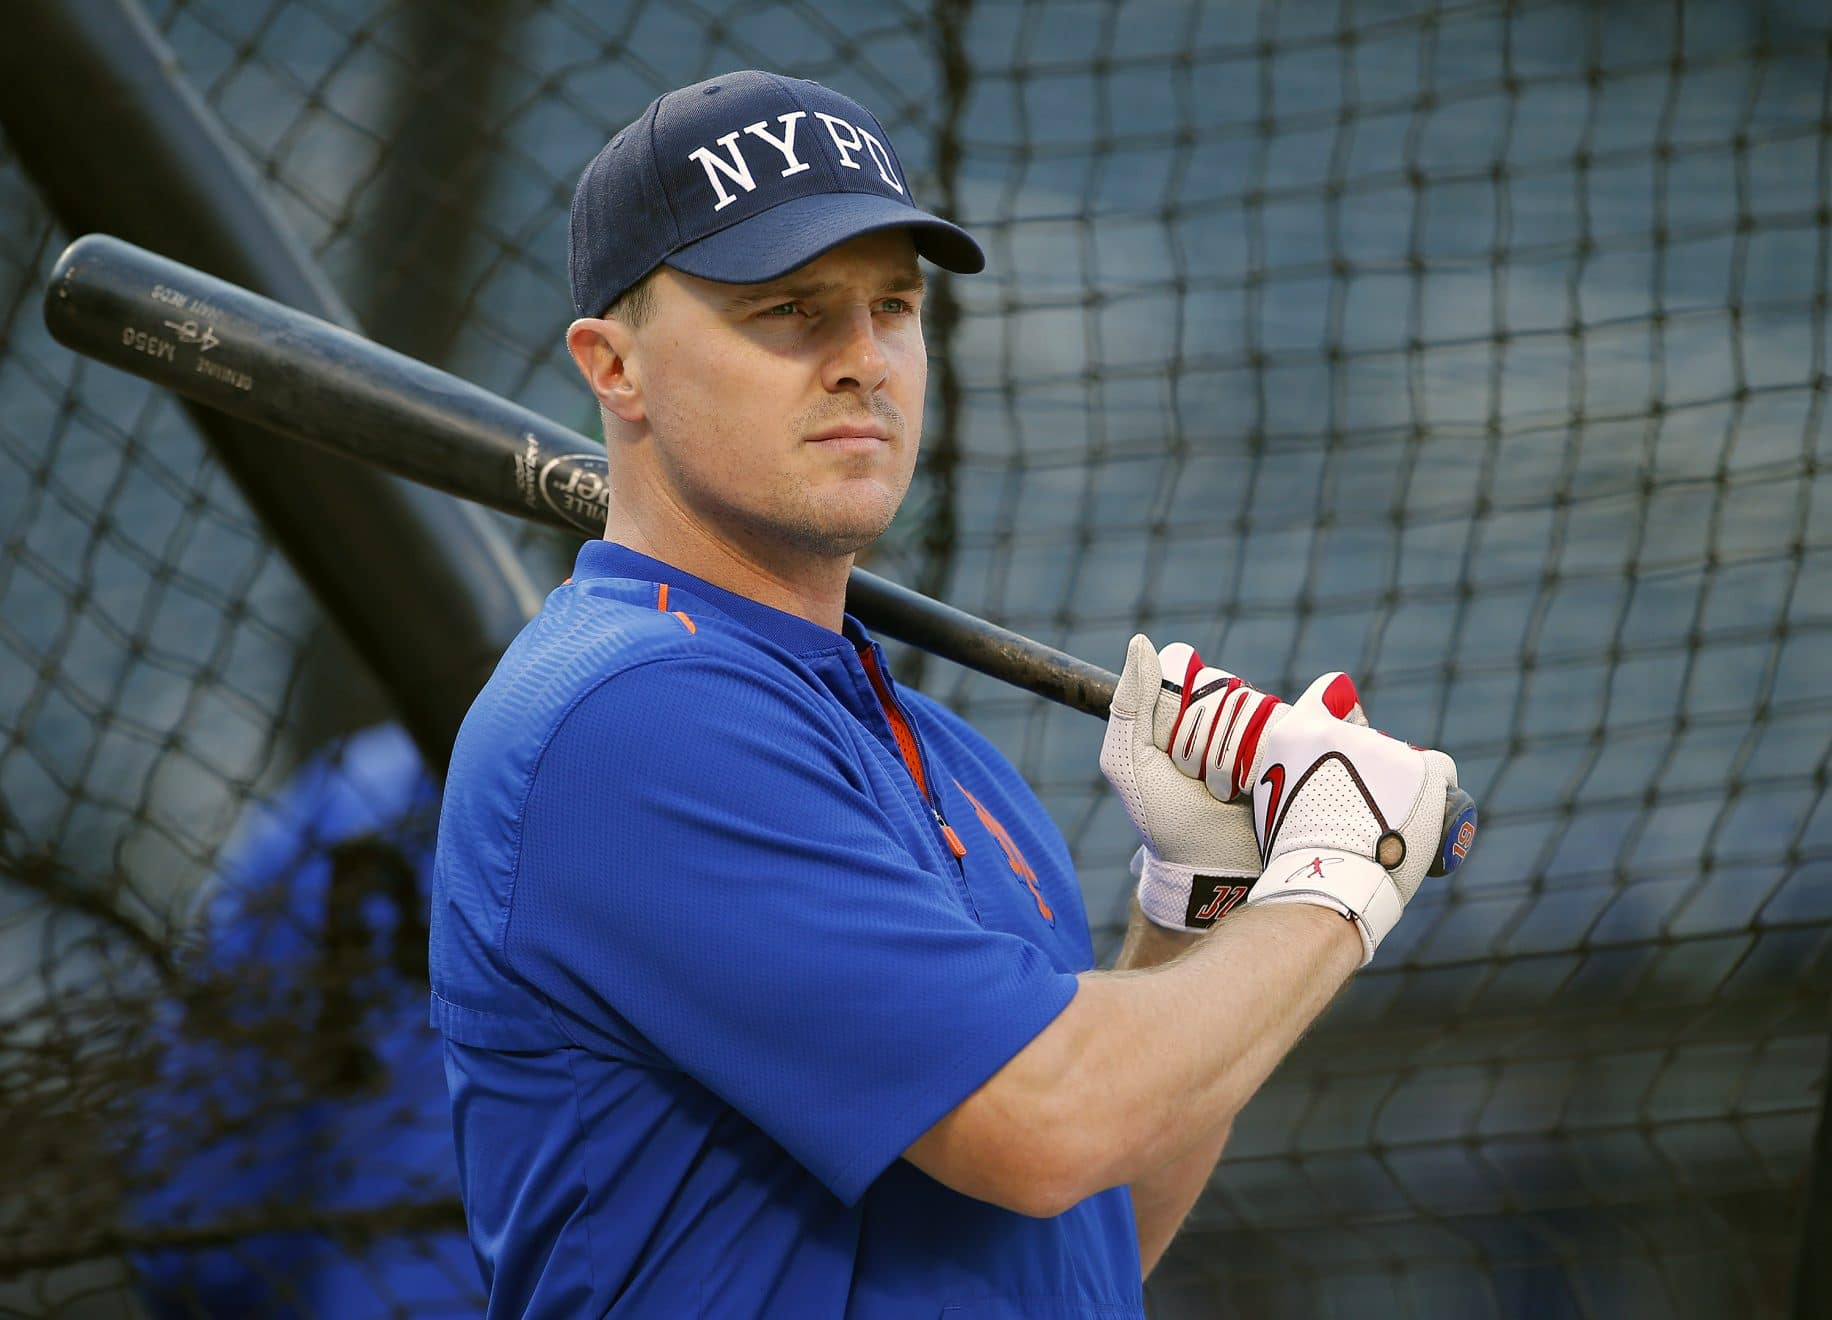 Gettyimages-599228544-new-york-mets-amazin-news-1-18-18-jay-bruce-is-officially-back-harrison-rumors-galore